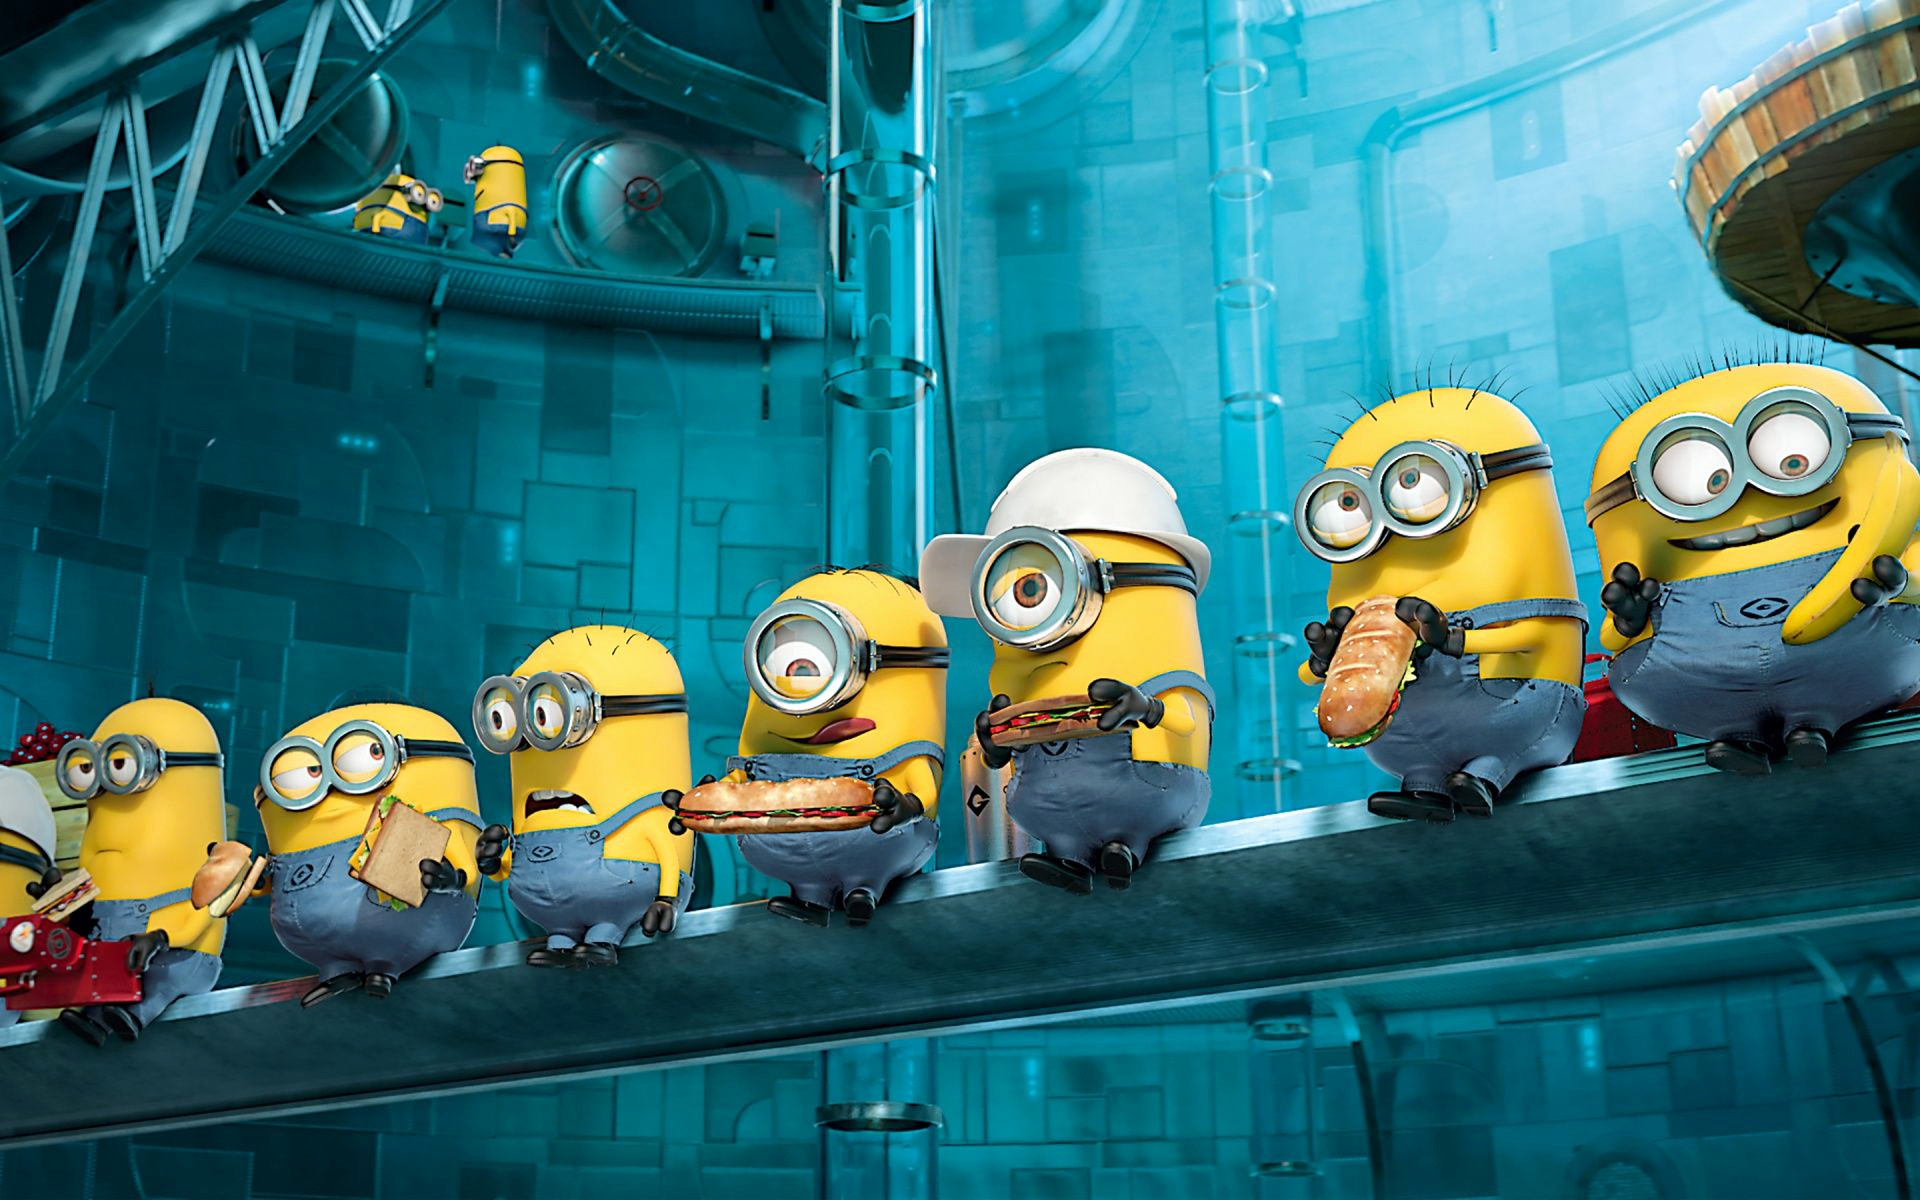 Res: 1920x1200, Minion Wallpaper Awesome Minions From Despicable Me